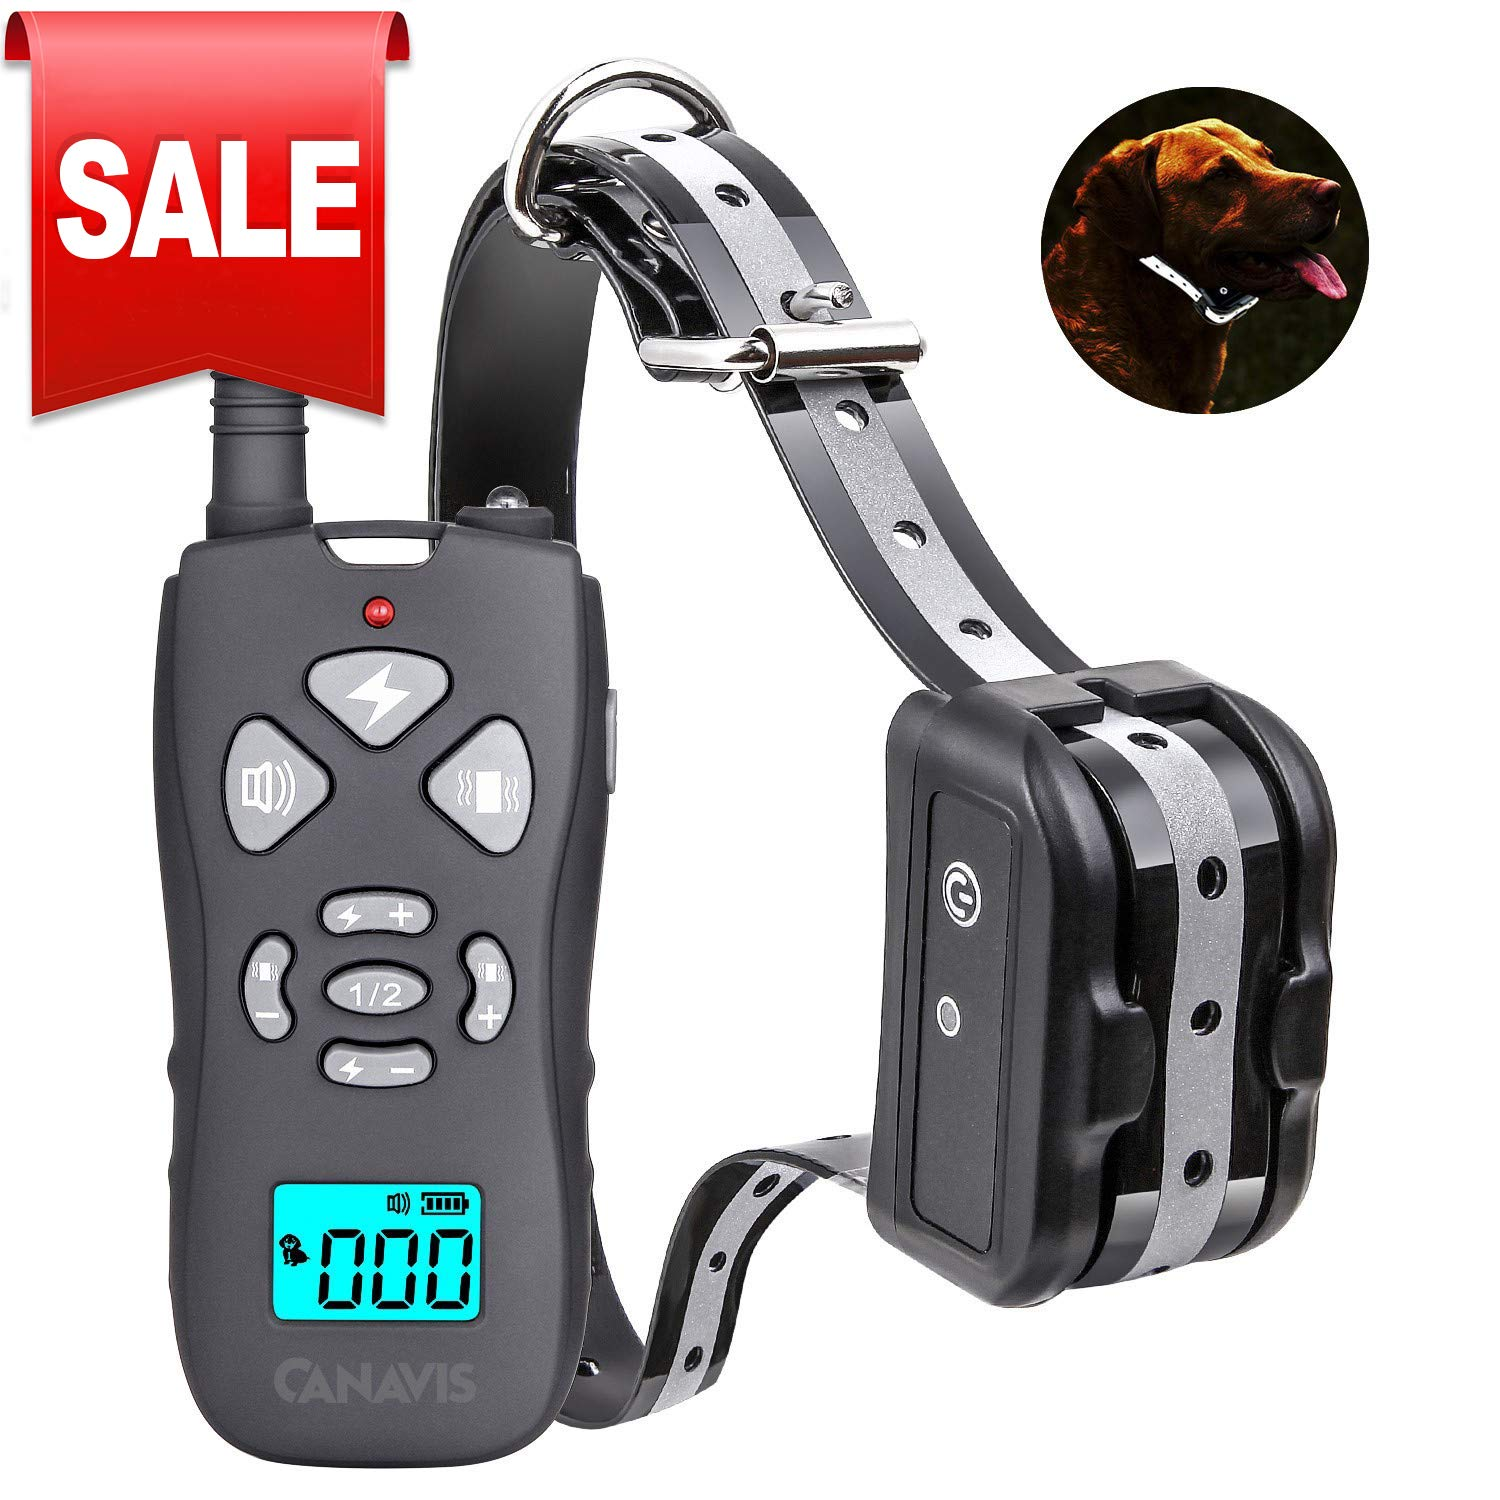 CANAVIS Dog Shock Collar with 1800Ft Remote, Waterproof Dog Training Collar, Rechargeable Electronic Collar with Vibration Tone Shock Modes, Adjustable Collar Strap for Small Medium Large Dog by CANAVIS